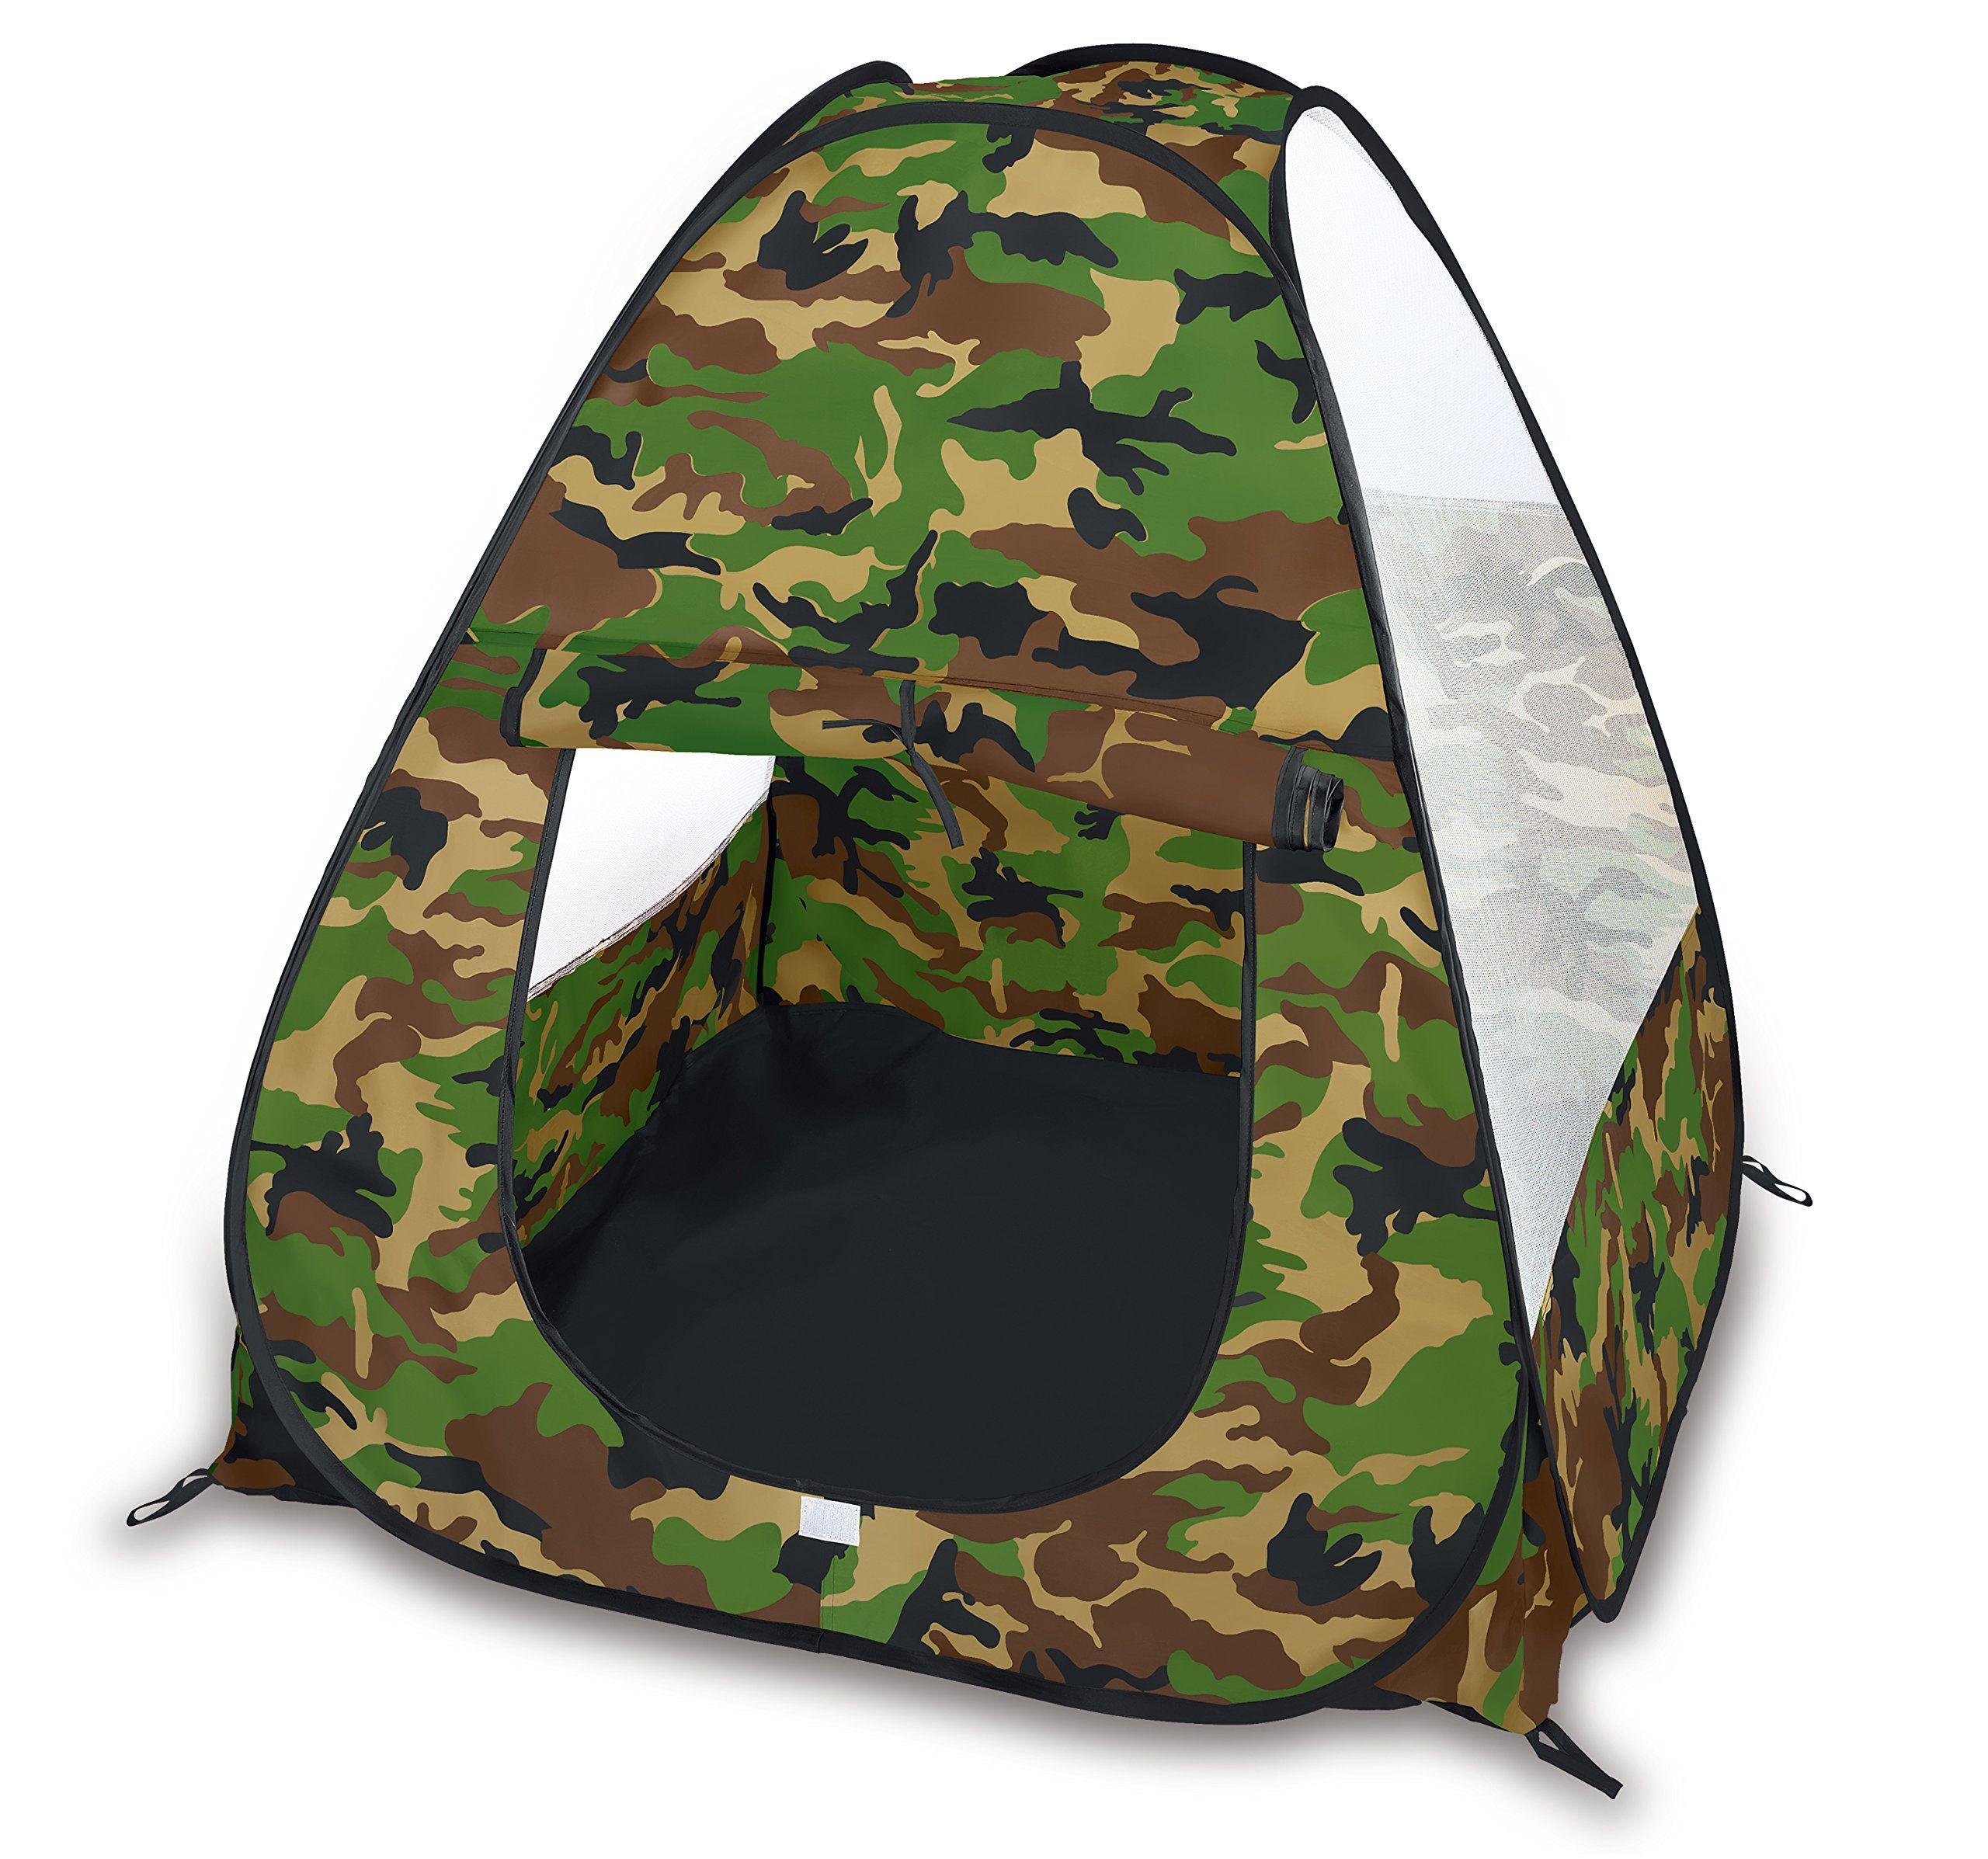 Camouflage Military Pop Up Play Tent Collapsible Indoor Outdoor Army Playhouse For Kids Collapsible Camouflage Pop Up P Pop Up Play Play Tent Kids Playhouse